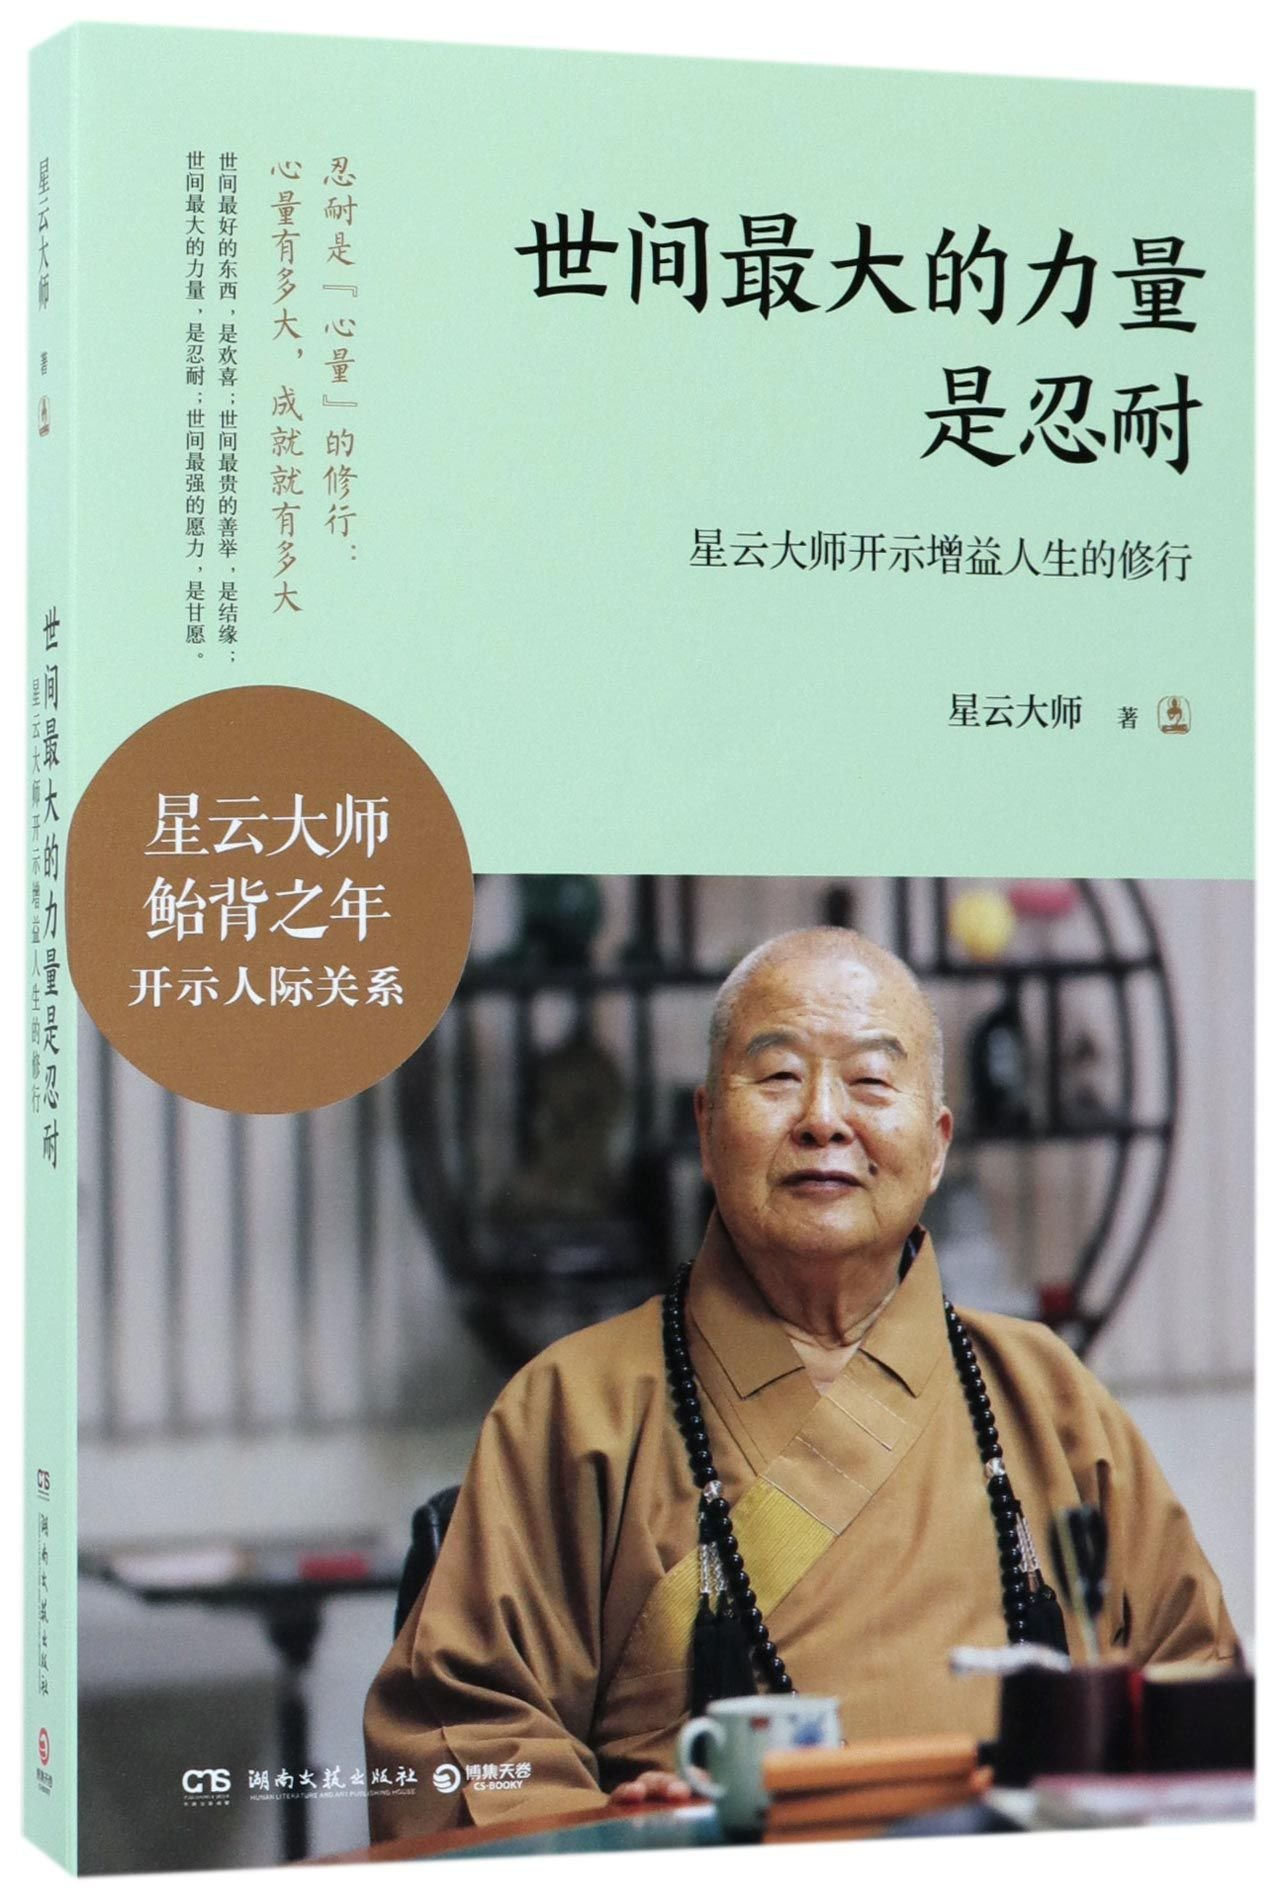 Download Tolerance, the Greatest Power in World: Grand Master Hsing Yun on Life Cultivation (Chinese Edition) pdf